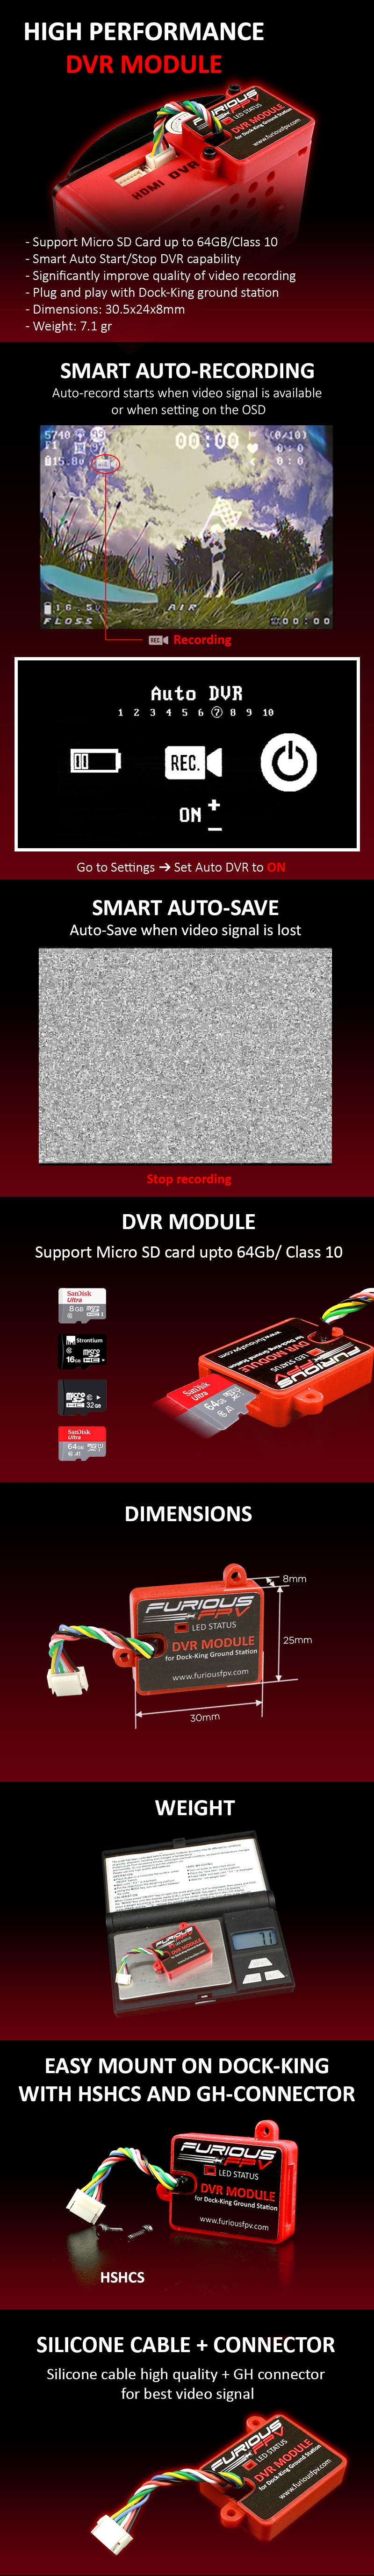 FuriousFPV High Performance DVR Module For Dock-King Ground Station Support Smart Auto Recording